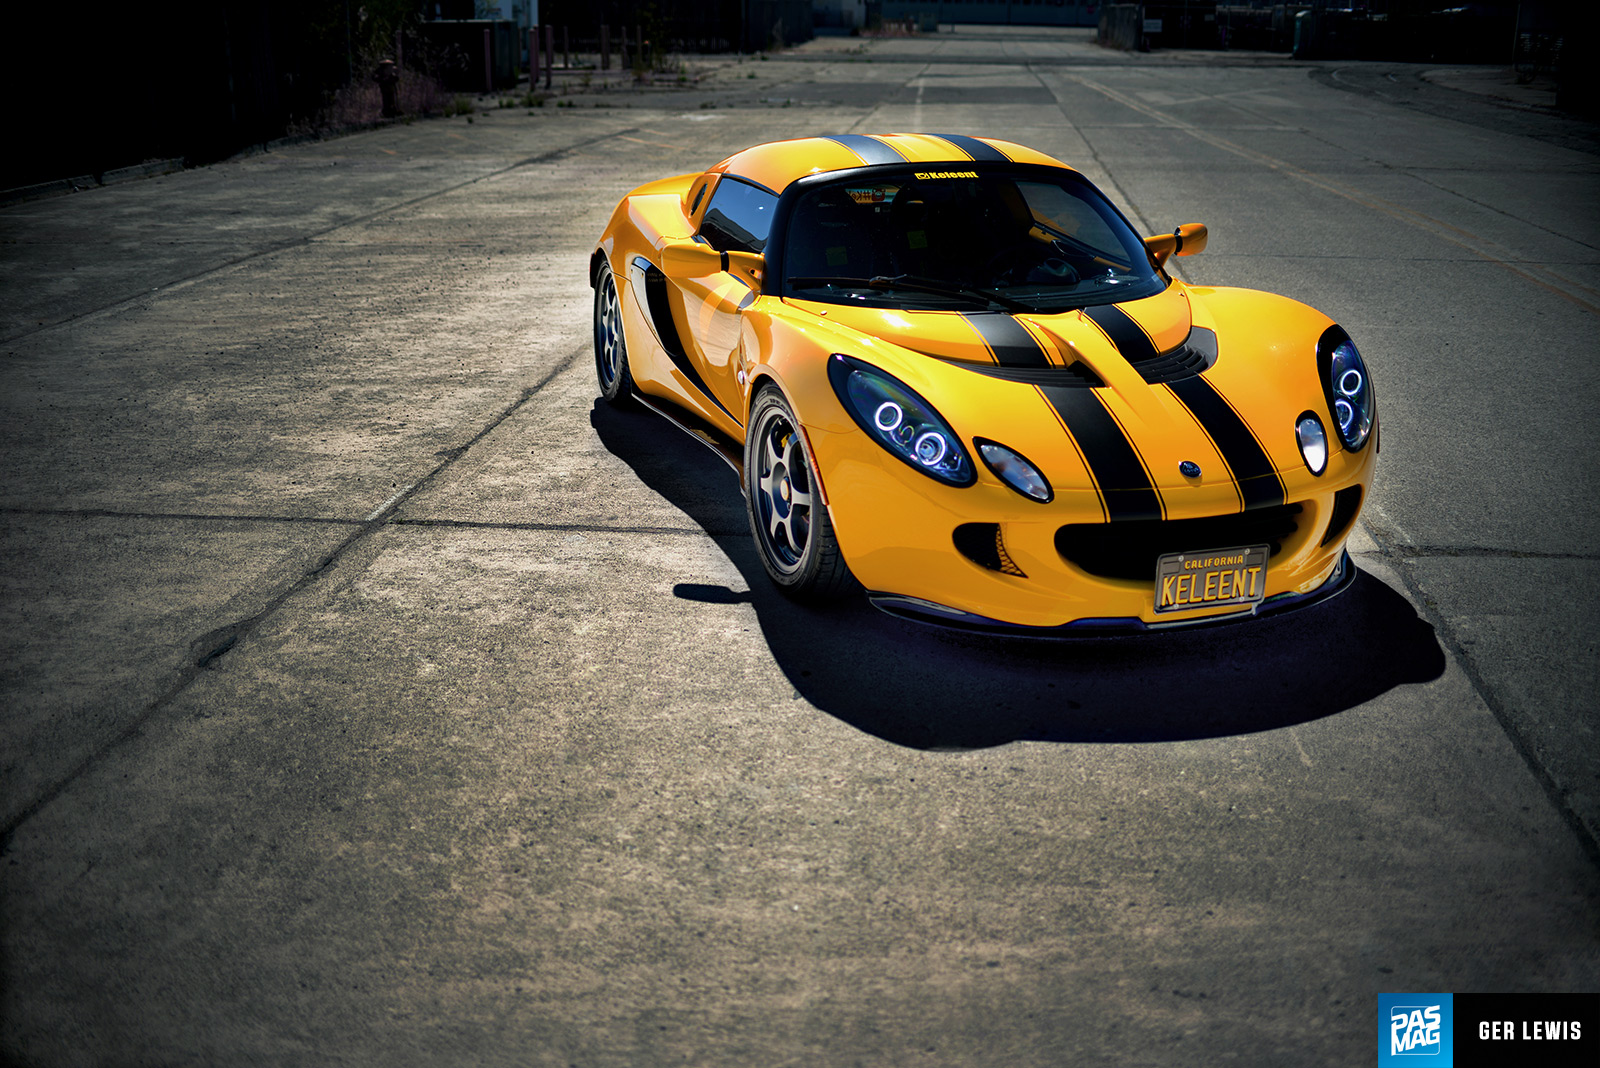 03 Clint Yesui 2005 Lotus Elise PASMAG TBGLIVE